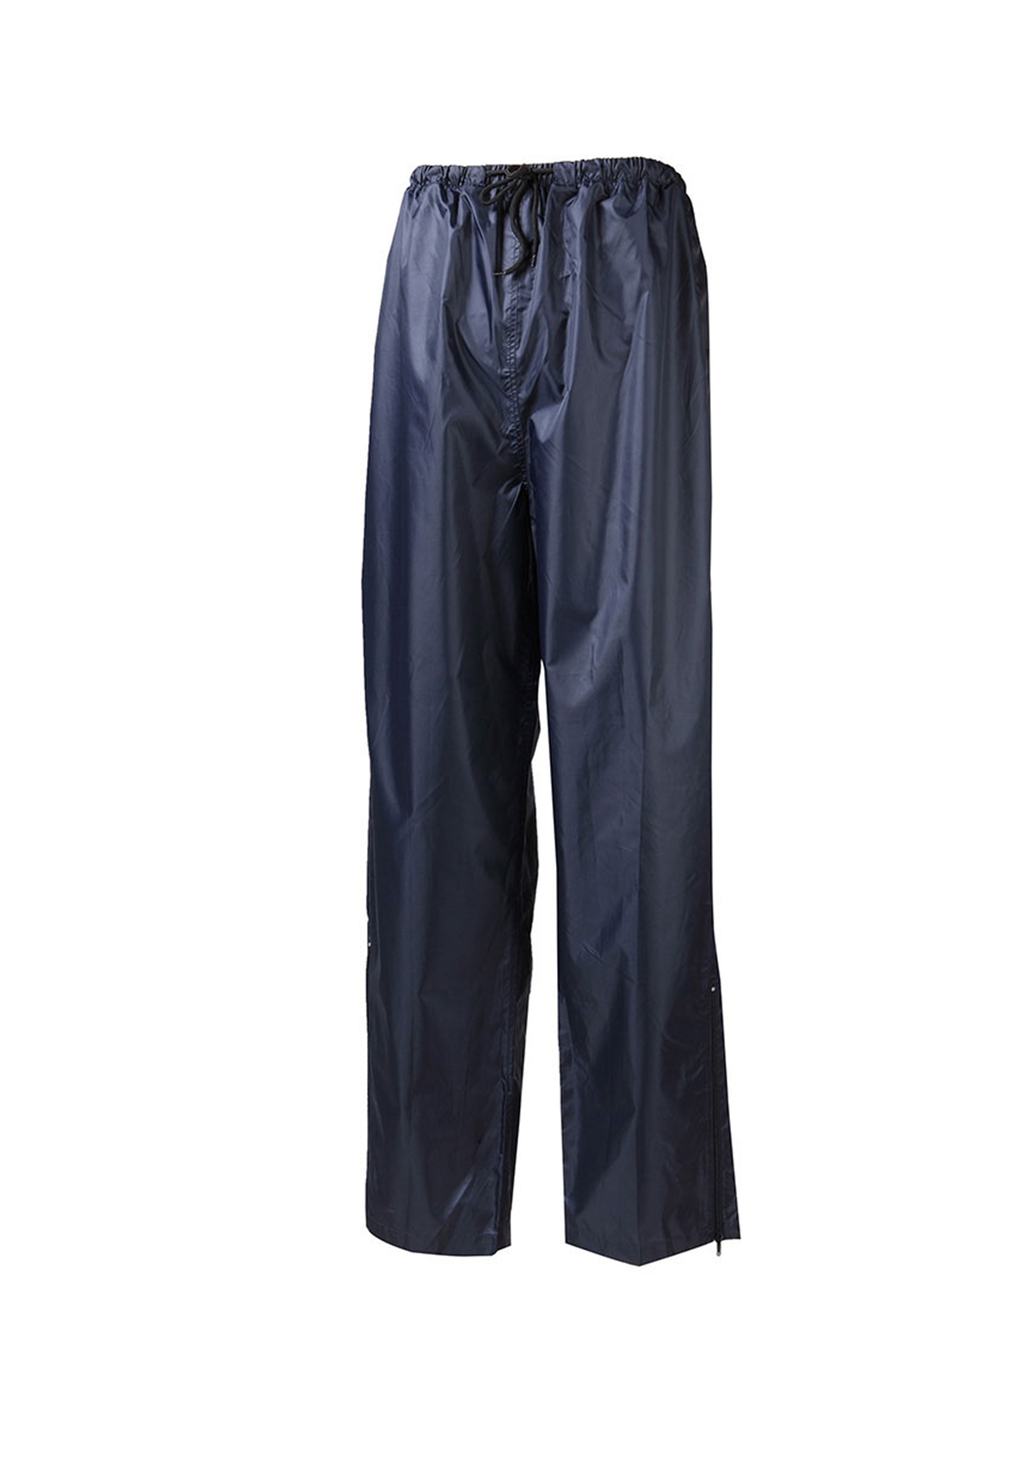 RAINBIRD GOSTOW RAIN PANTS JUNIOR NAVY <br>K8540 NAVY